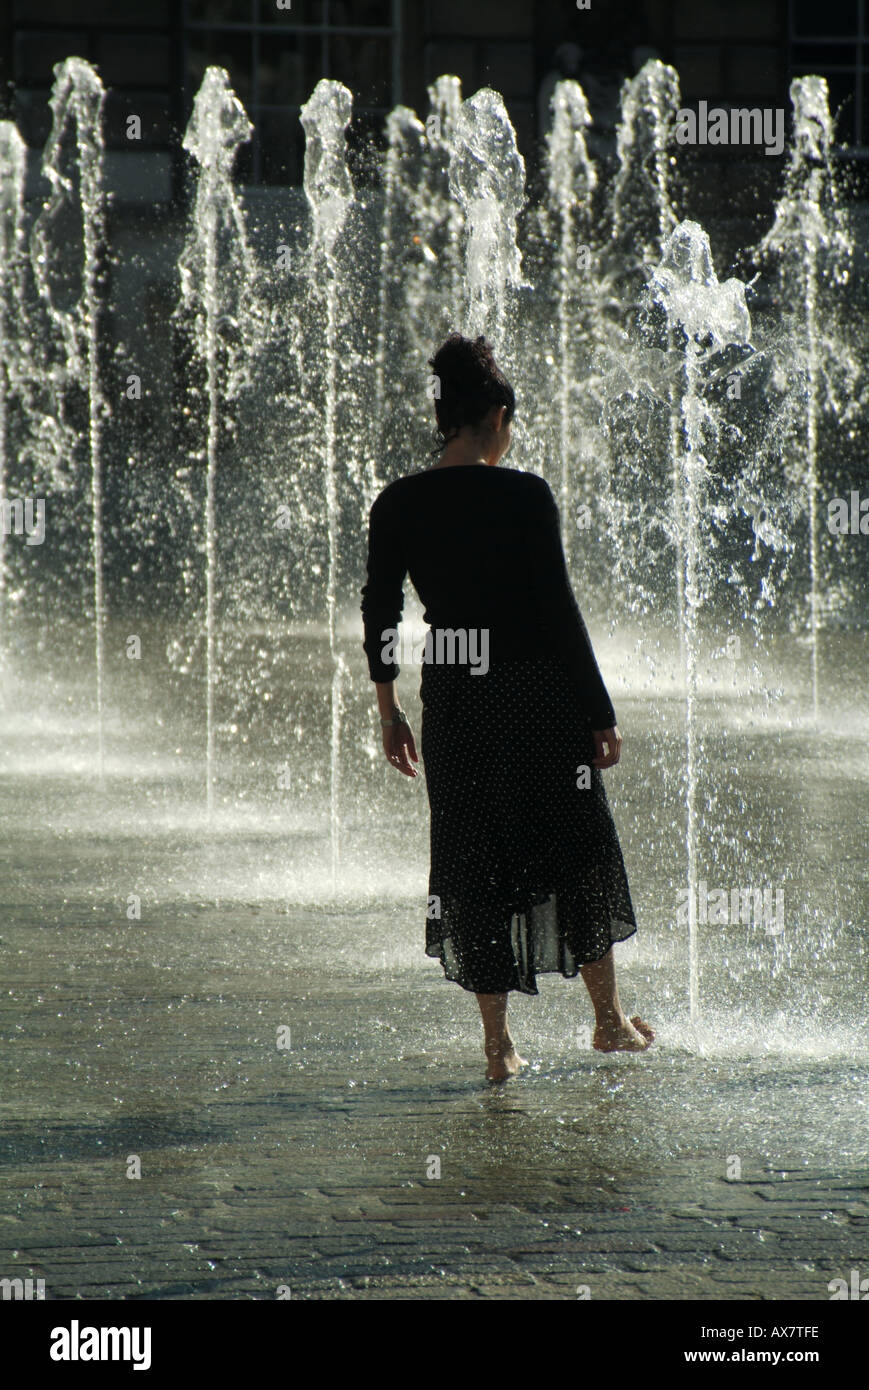 Fountain water feature young woman cooling off hot summer weather concept testing the water or dipping toe in water London England UK - Stock Image